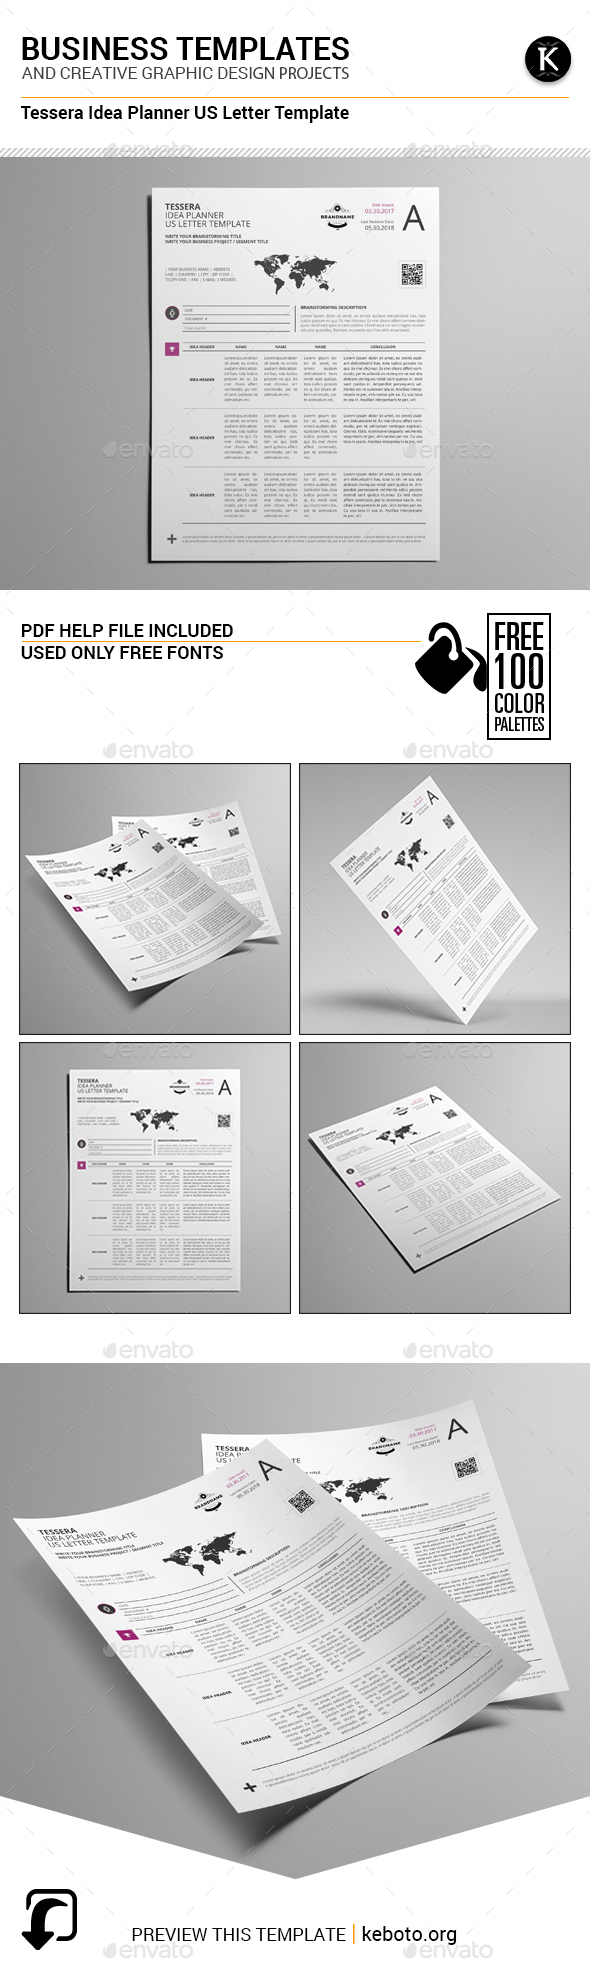 Tessera Idea Planner US Letter Template - Miscellaneous Print Templates